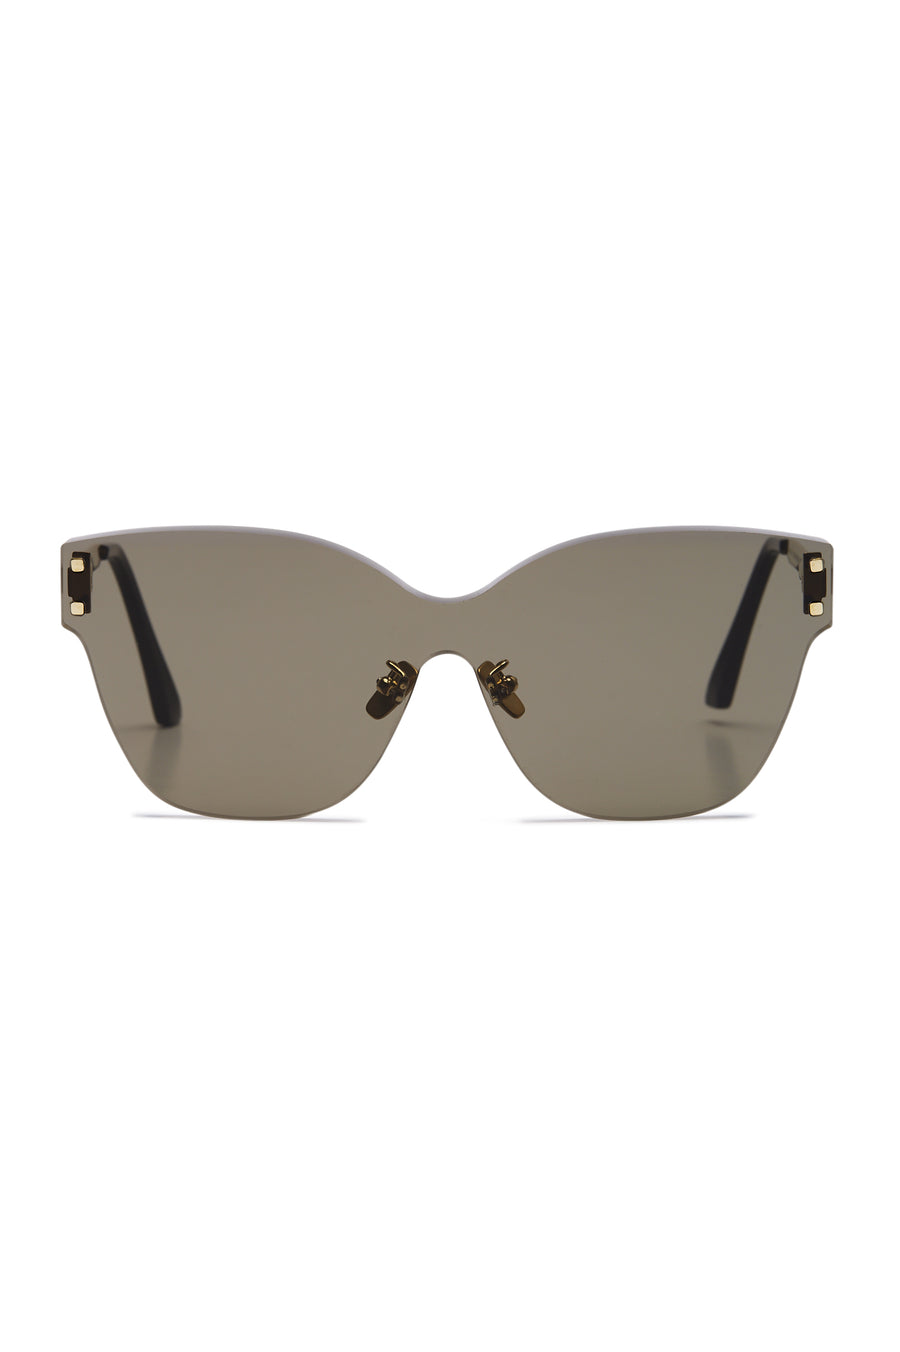 Butterfly Shield Glasses, Color Grey, Japanese Acetate, Upturned Edges, Anti Slip Nose Pads